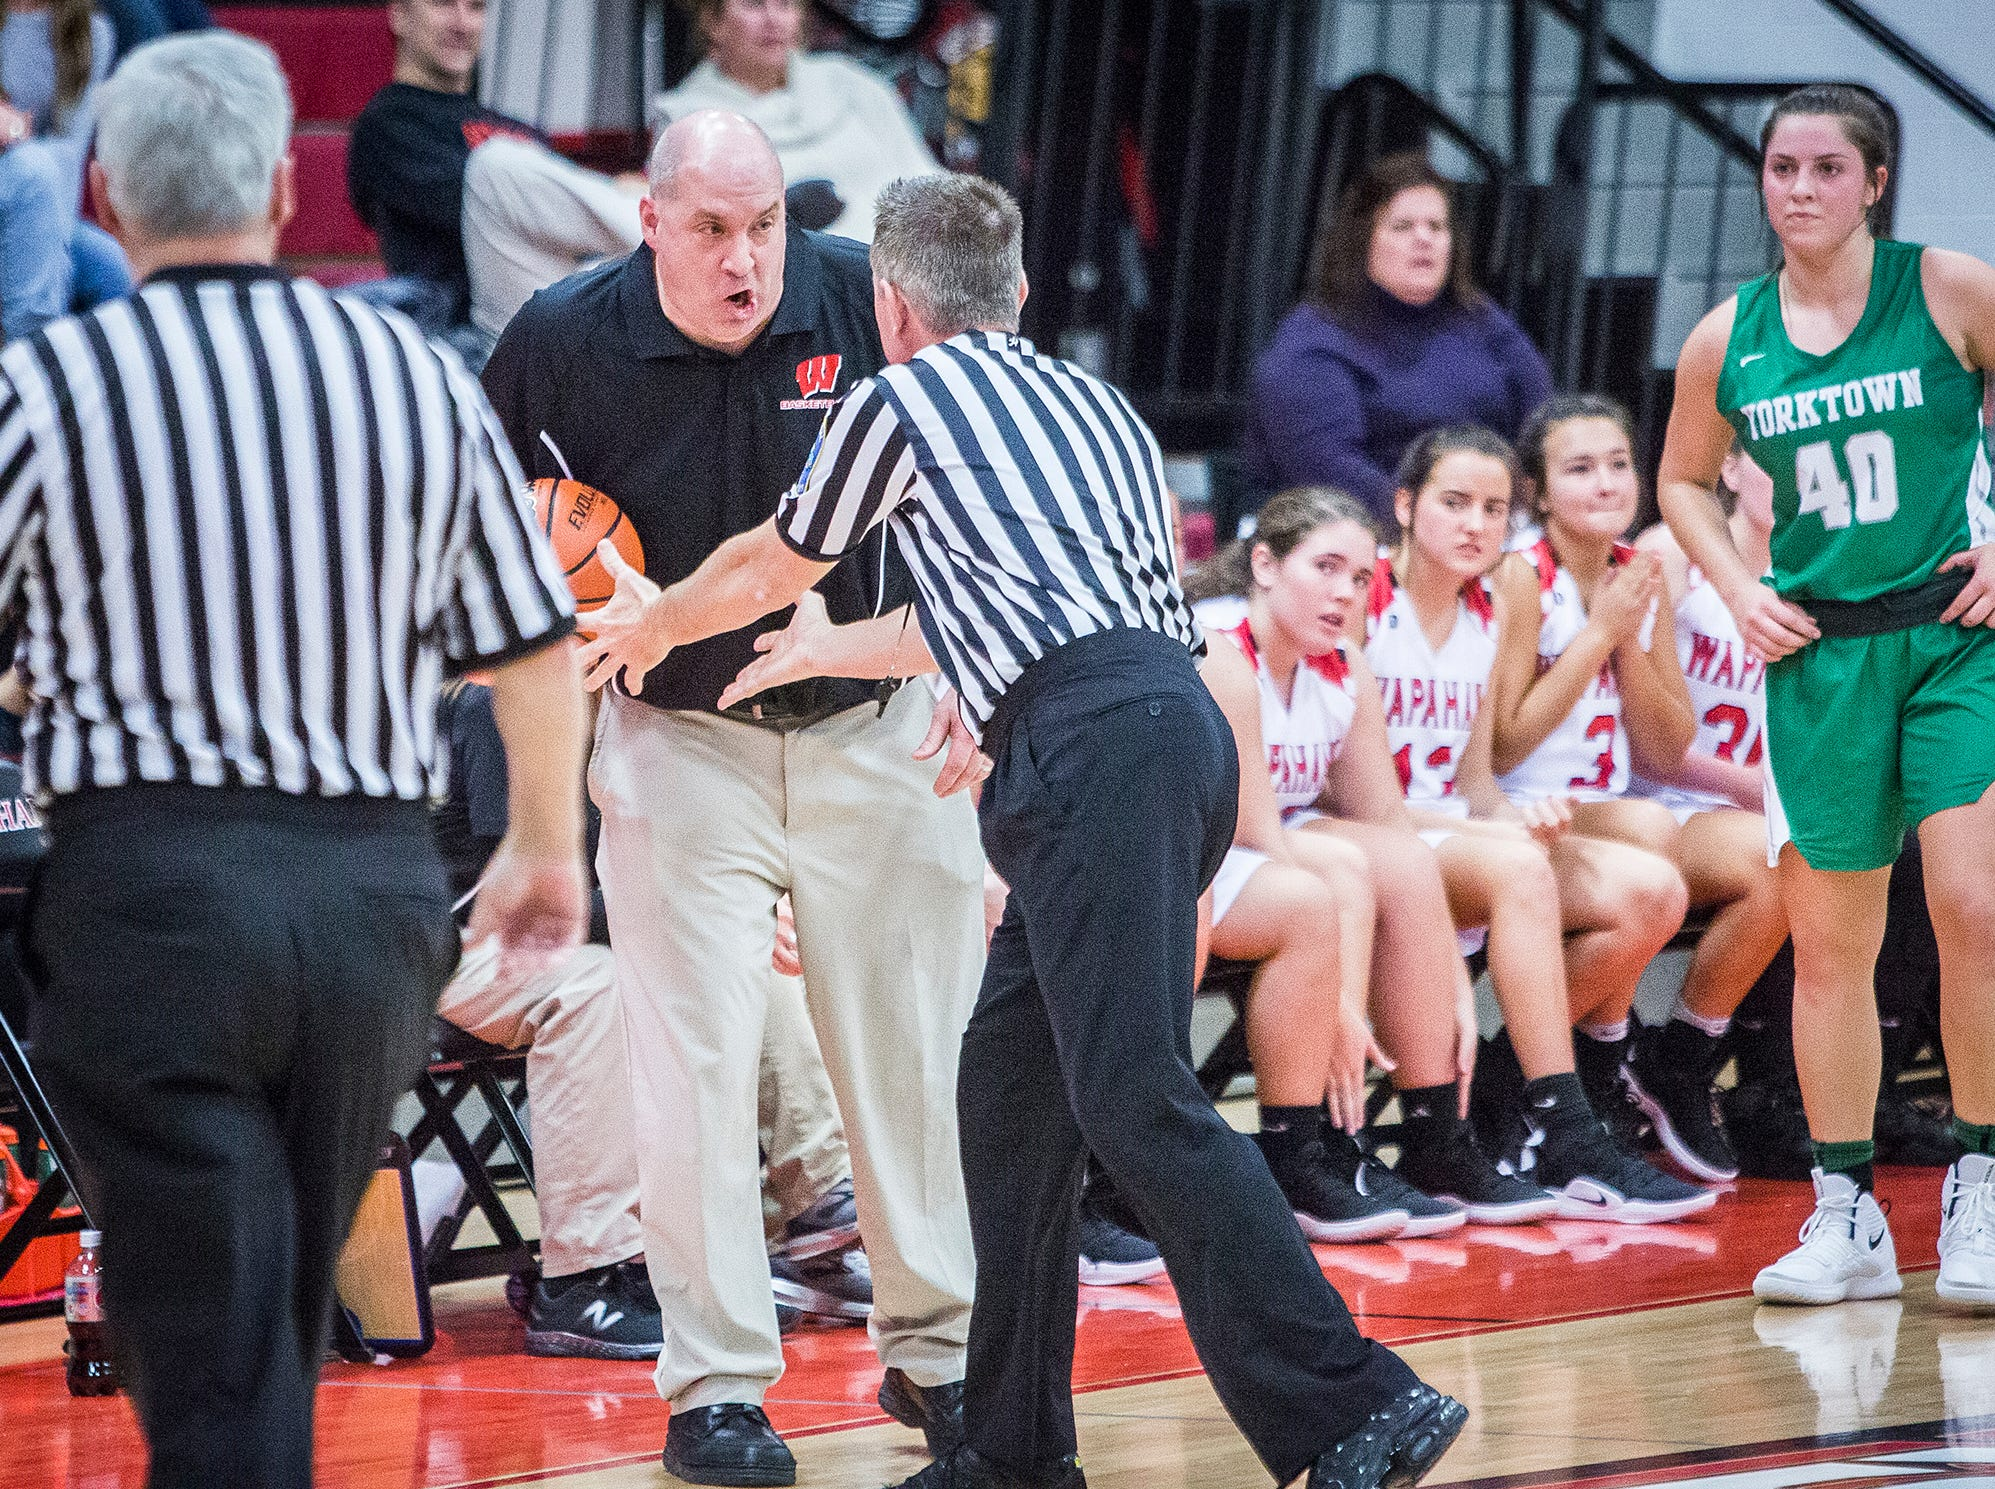 Wapahani coach Scott Hudson argues with an official during a game against Yorktown at Wapahani High School Tuesday, Dec. 4, 2018.